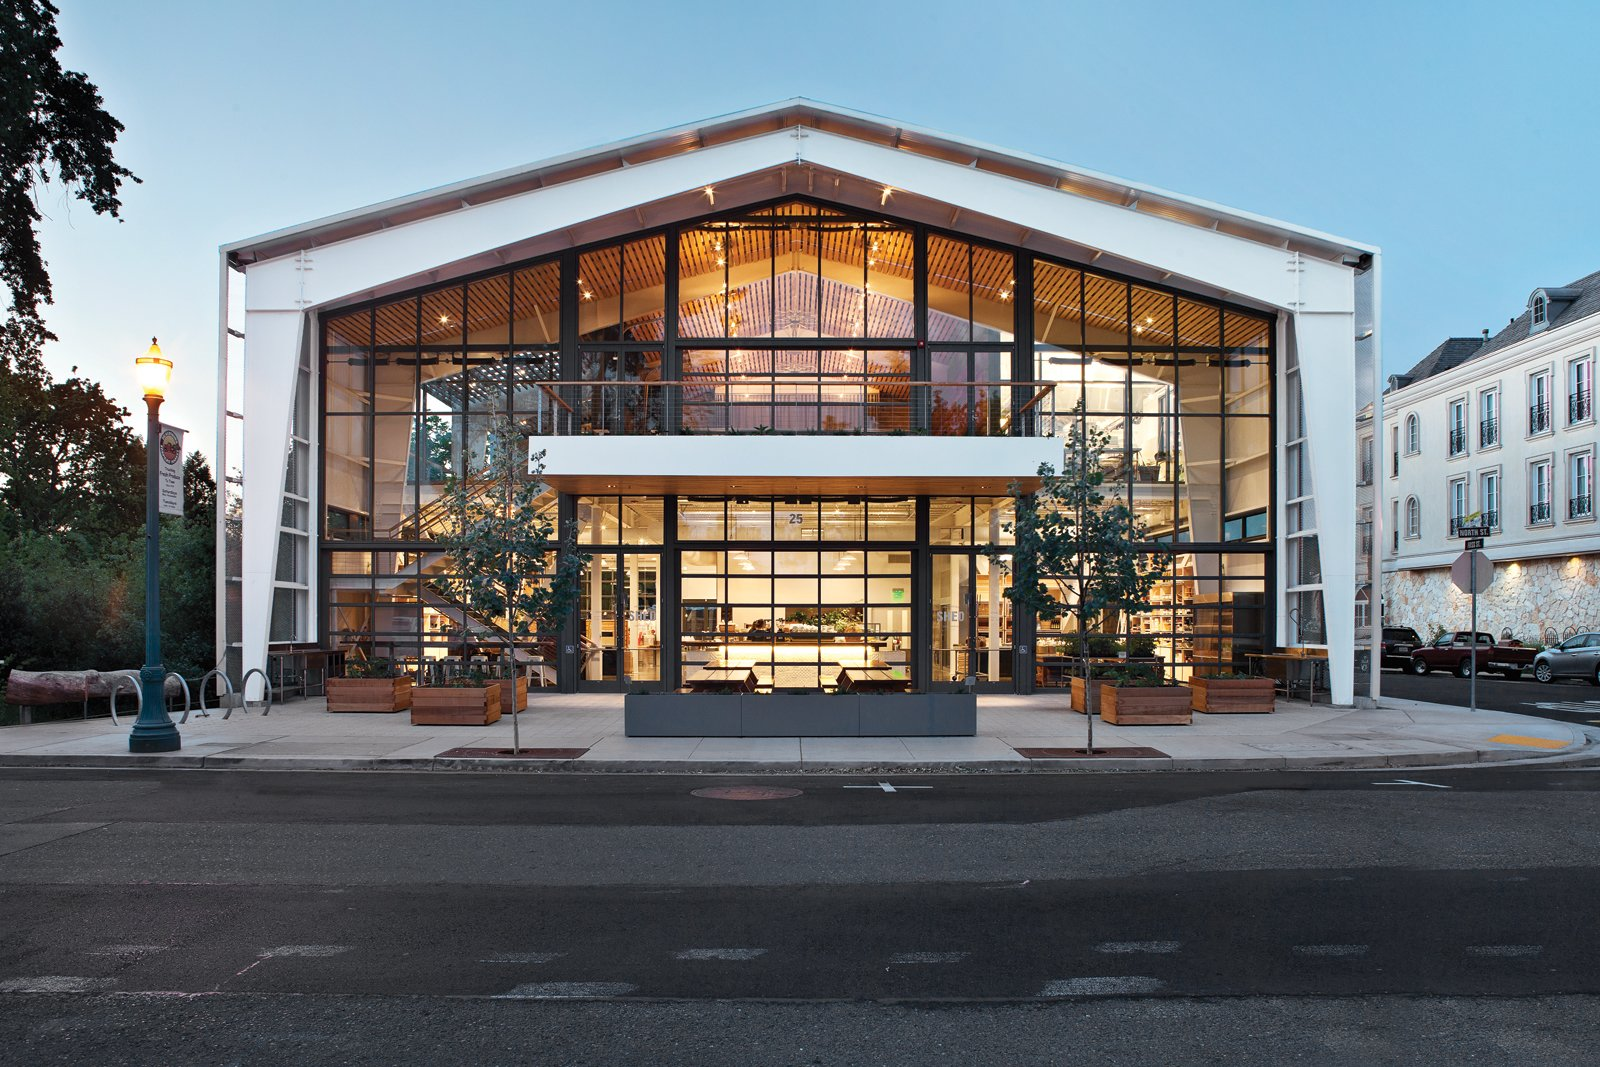 """""""My latest fixation is the Shed in Healdsburg, California. The hybrid retail-restaurant-event space features communal dinners, homesteading classes, a collection of kitchen supplies and gardening tools, and even a fermentation bar."""" —Dave Cuzner of grainedit.com  Blogger Focus: Design Destinations by Jaime Gillin"""